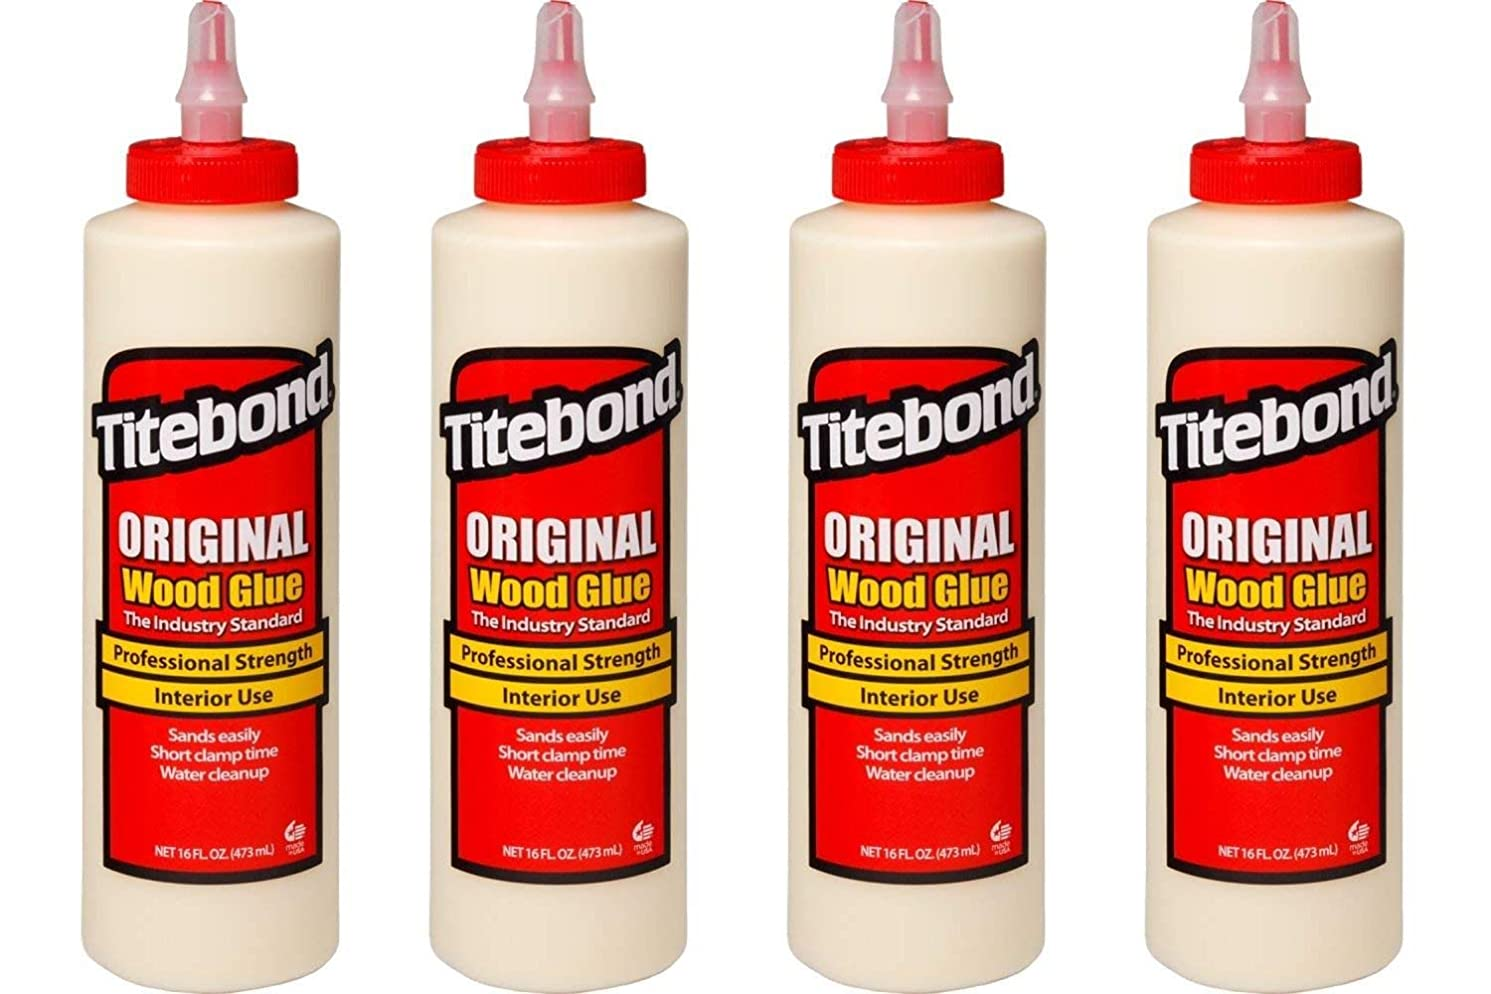 Titebond 5064 Original Wood Glue, 16-Ounces (Fоur Paсk)